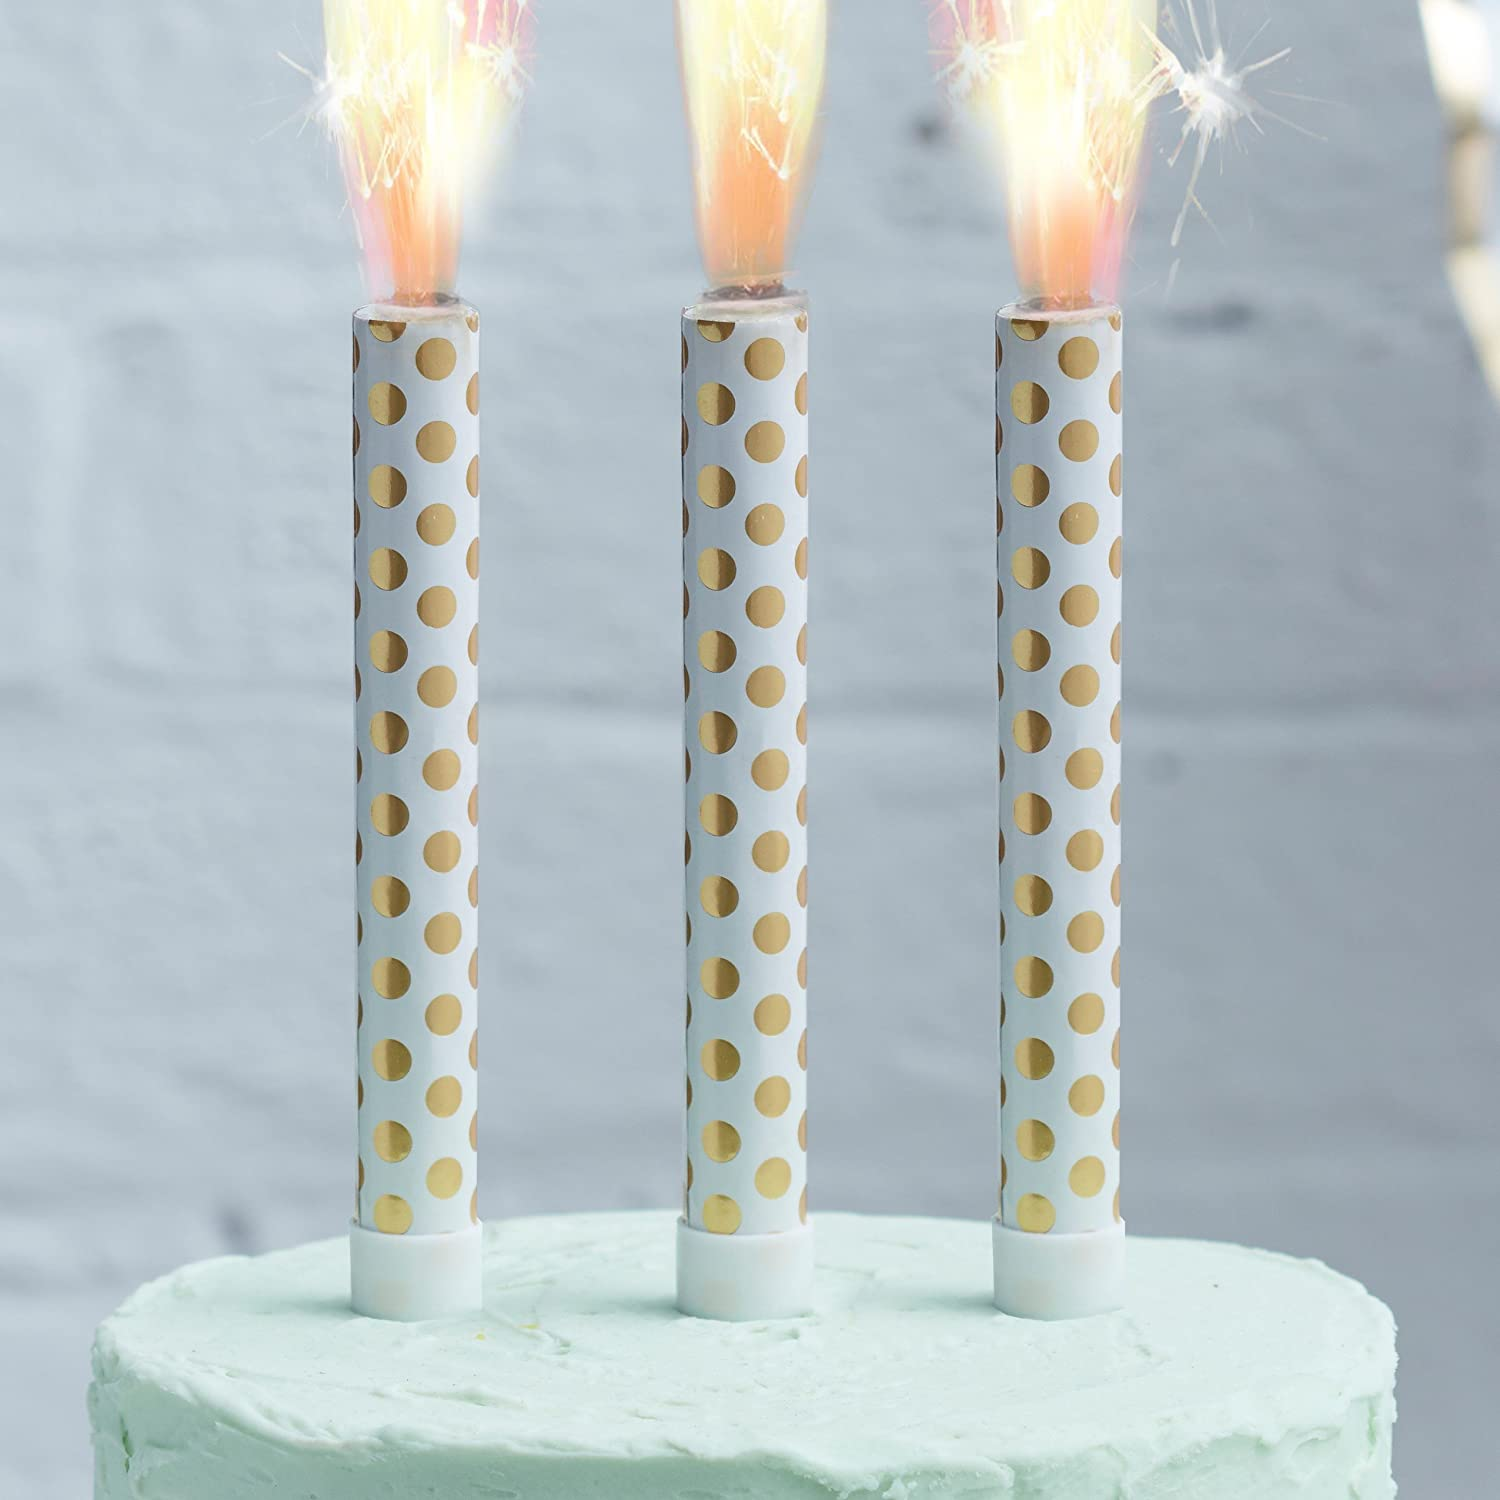 2 Pack Sparkling Birthday Party Ice Cake Fountain Cake Topper Candles Gold